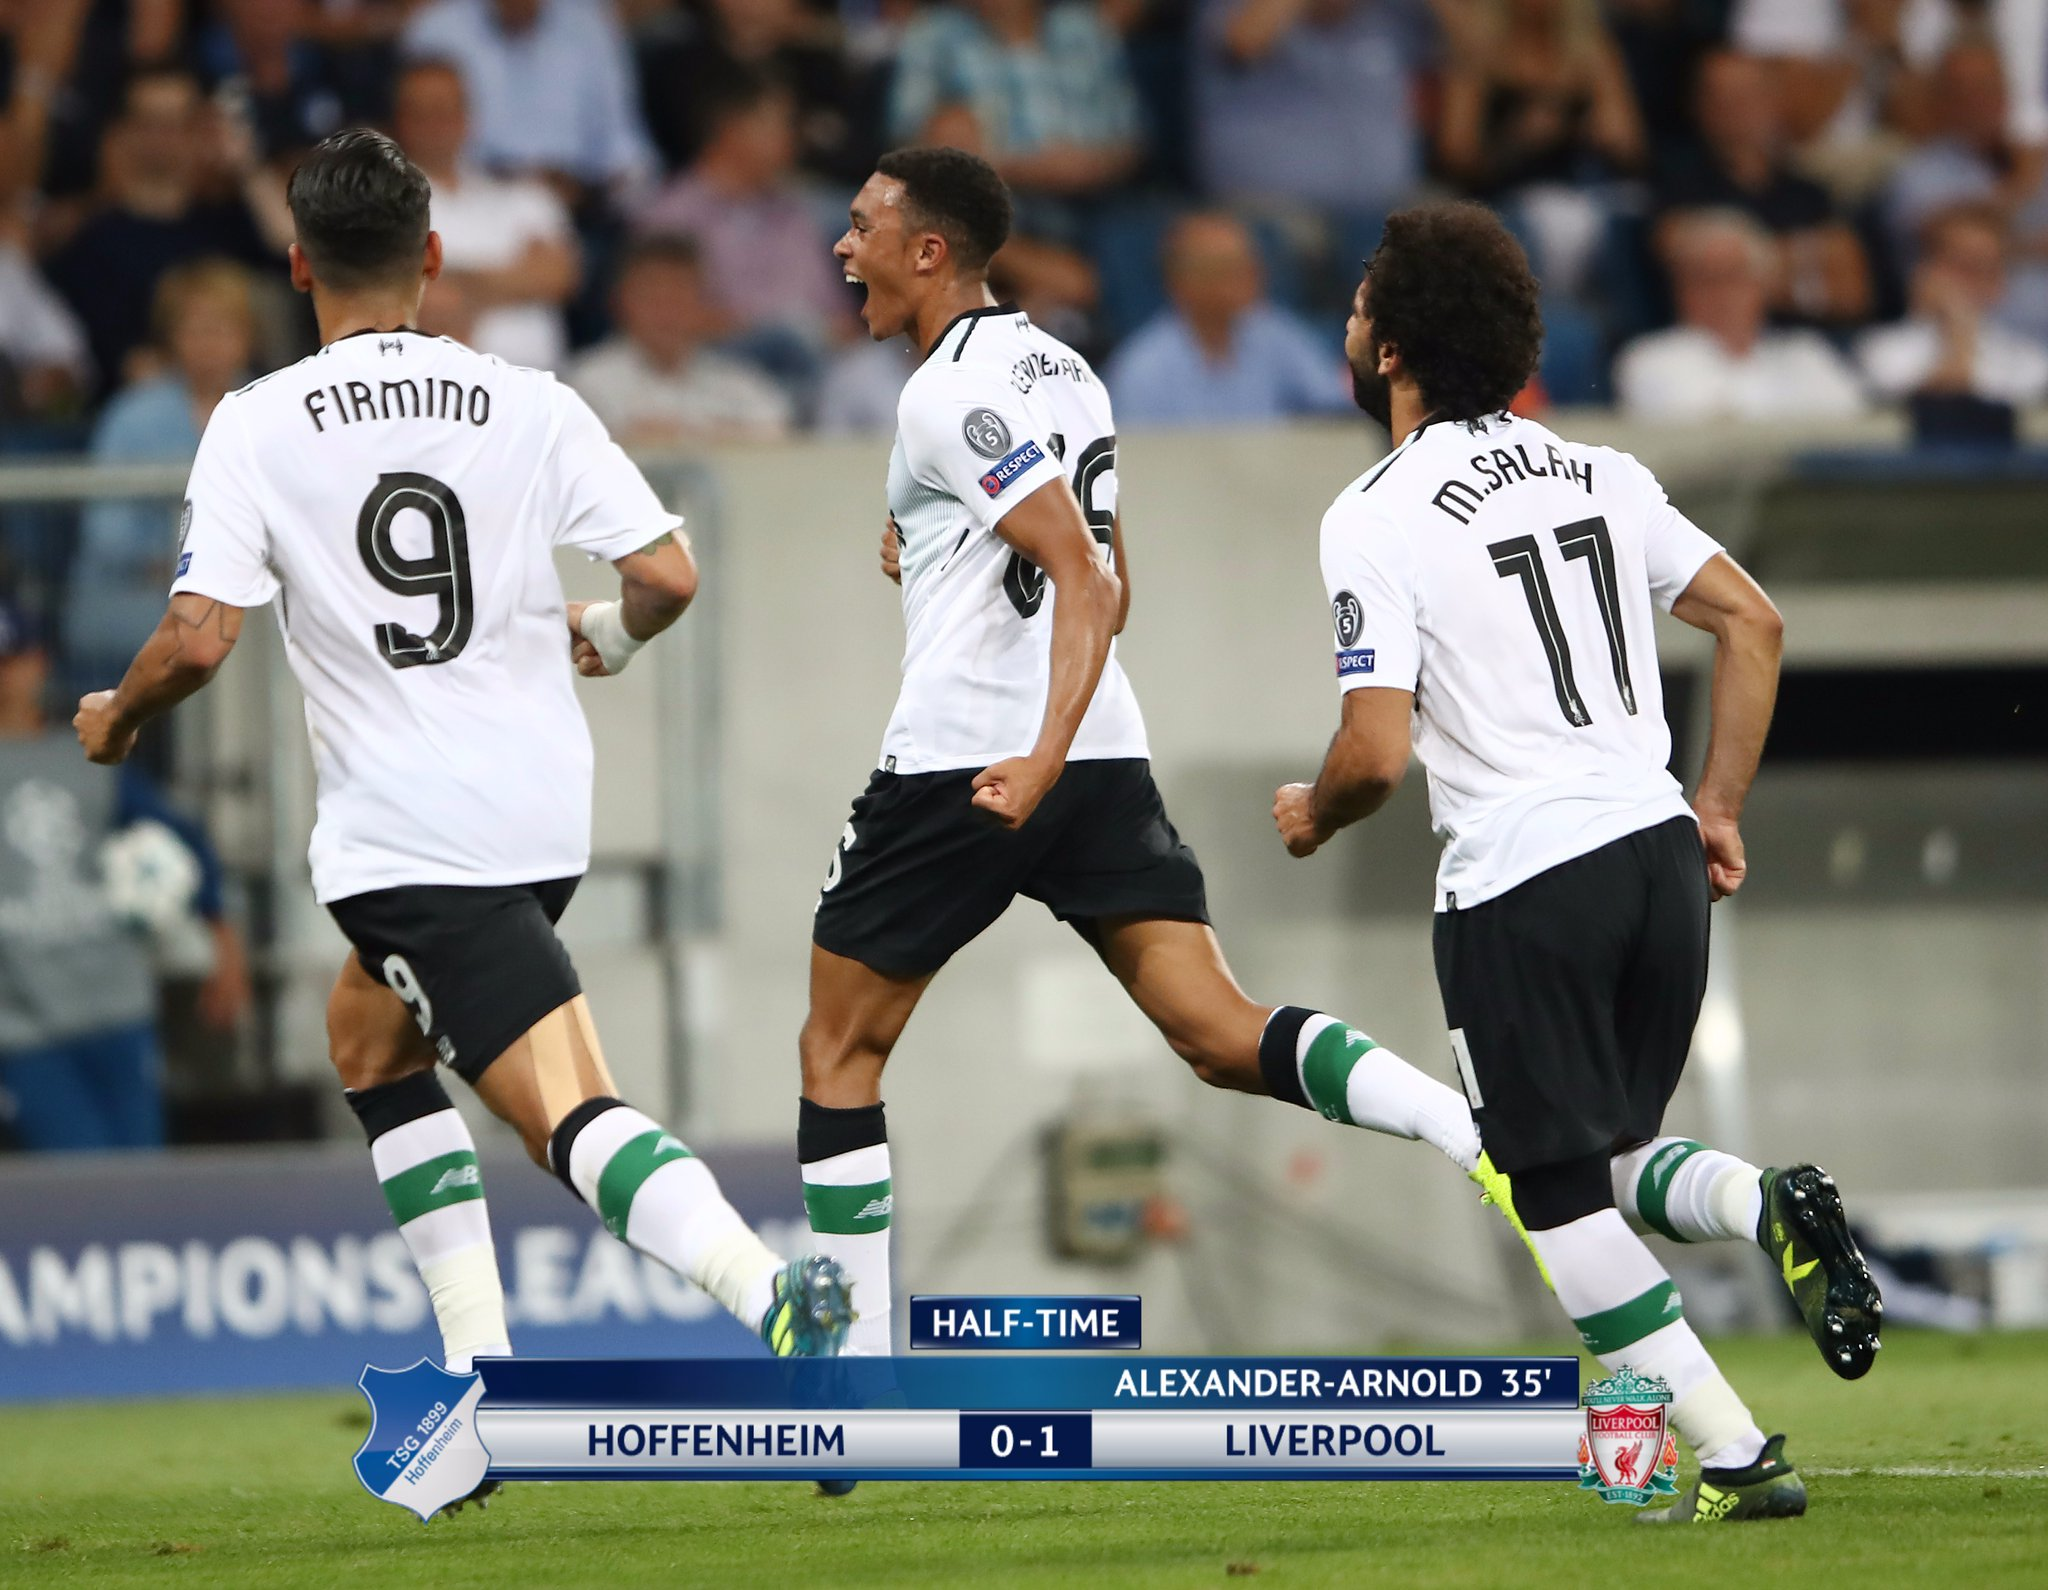 UCL Play-Offs: Samuel Wins Away With CSKA, Liverpool Edge Hoffenheim